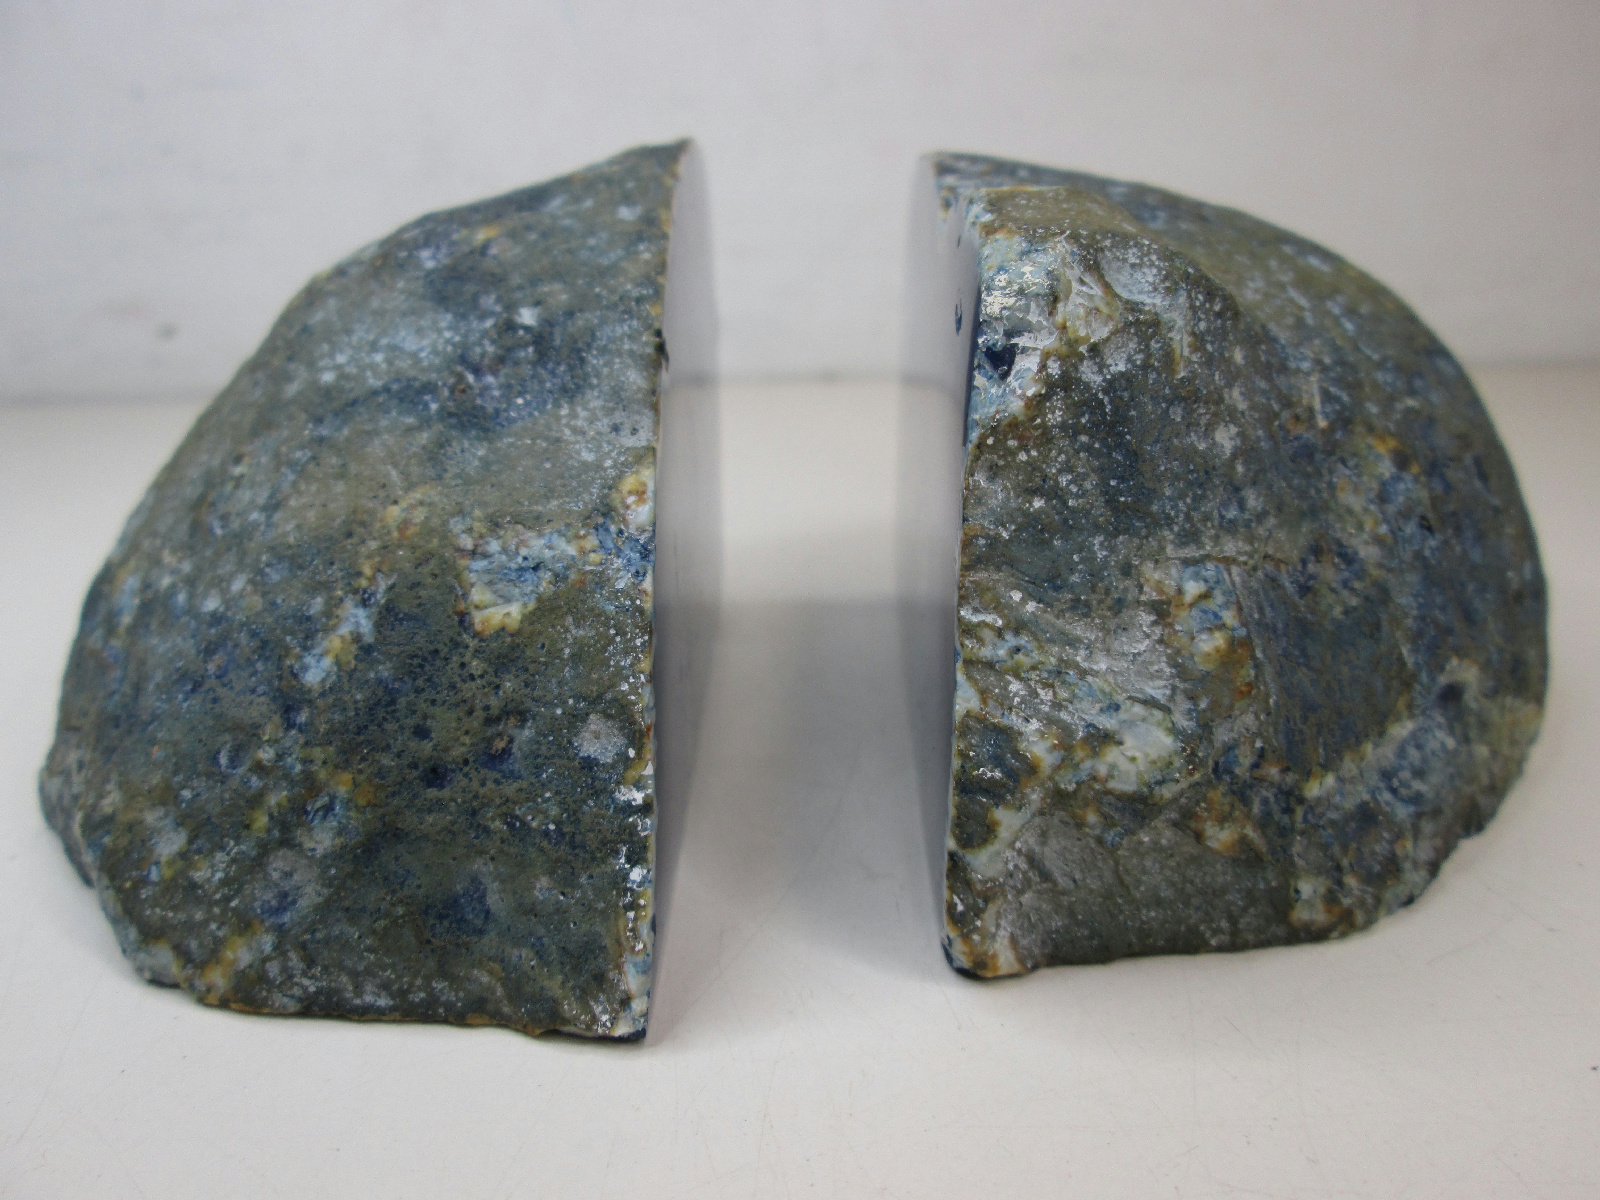 Pair of blue agate geode bookends book ends made in brazil ebay - Geode bookends ...